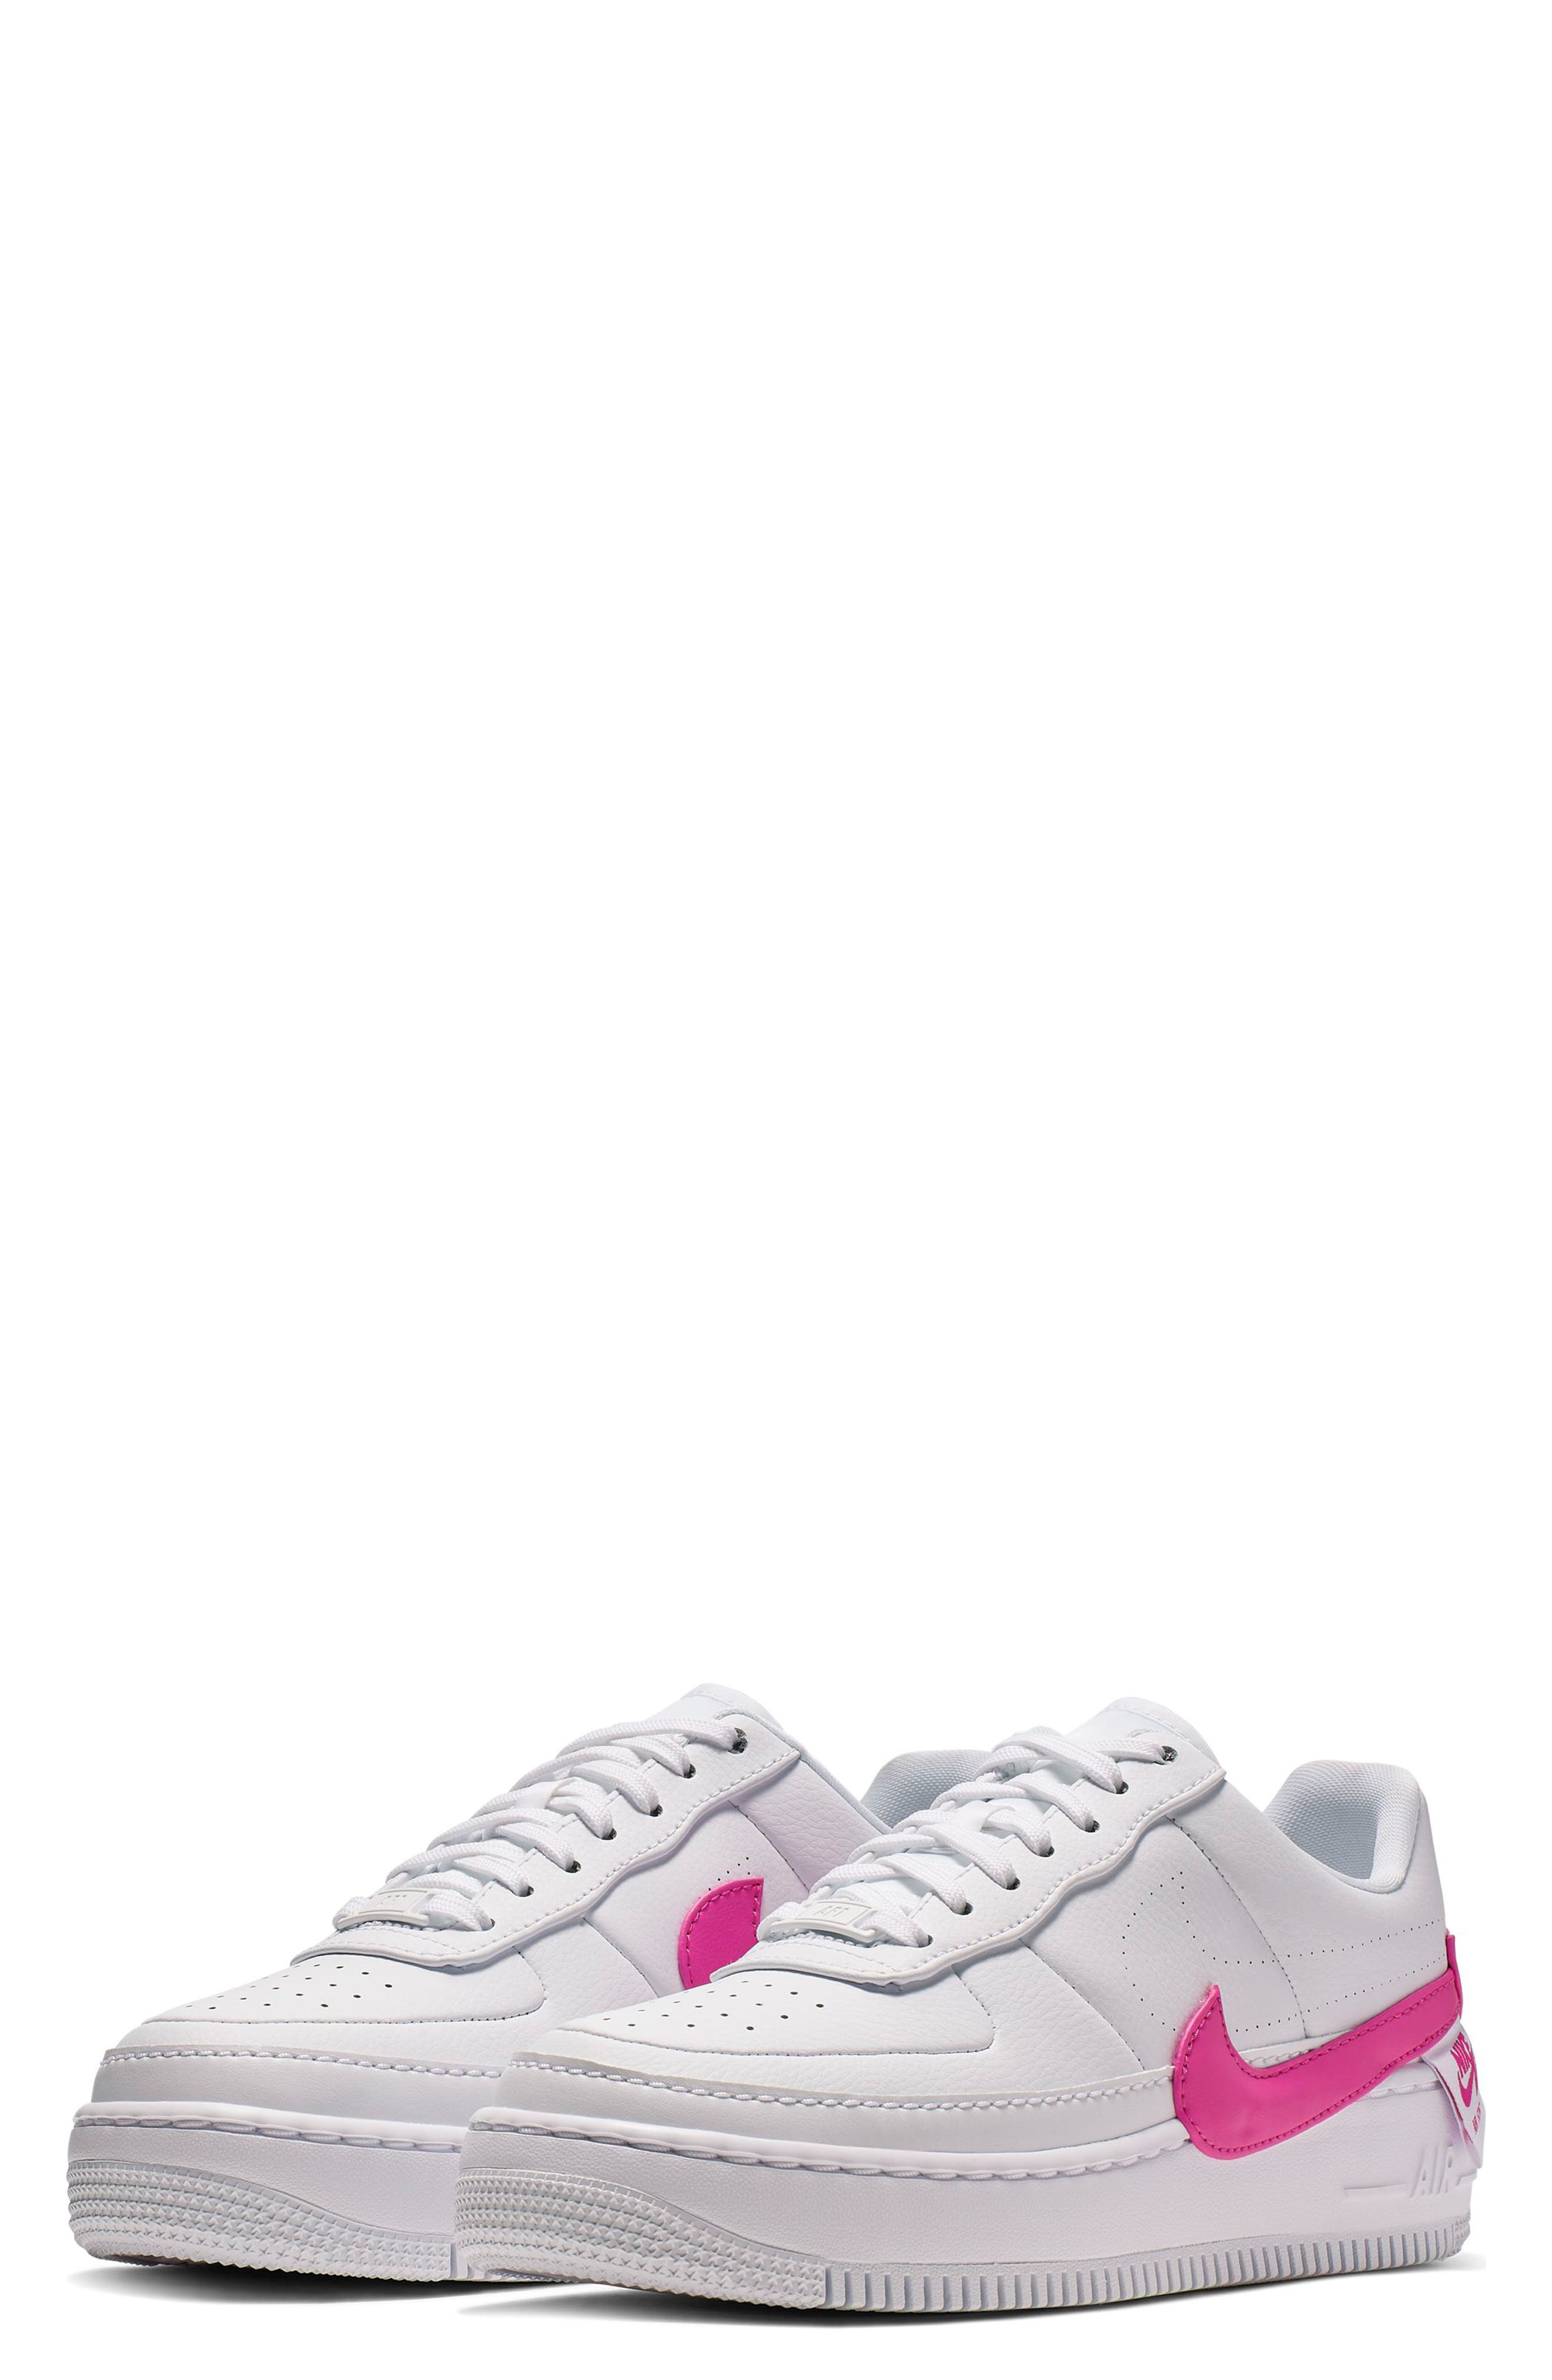 NIKE Air Force 1 Jester XX Sneaker, Main, color, WHITE/ LASER FUCHSIA